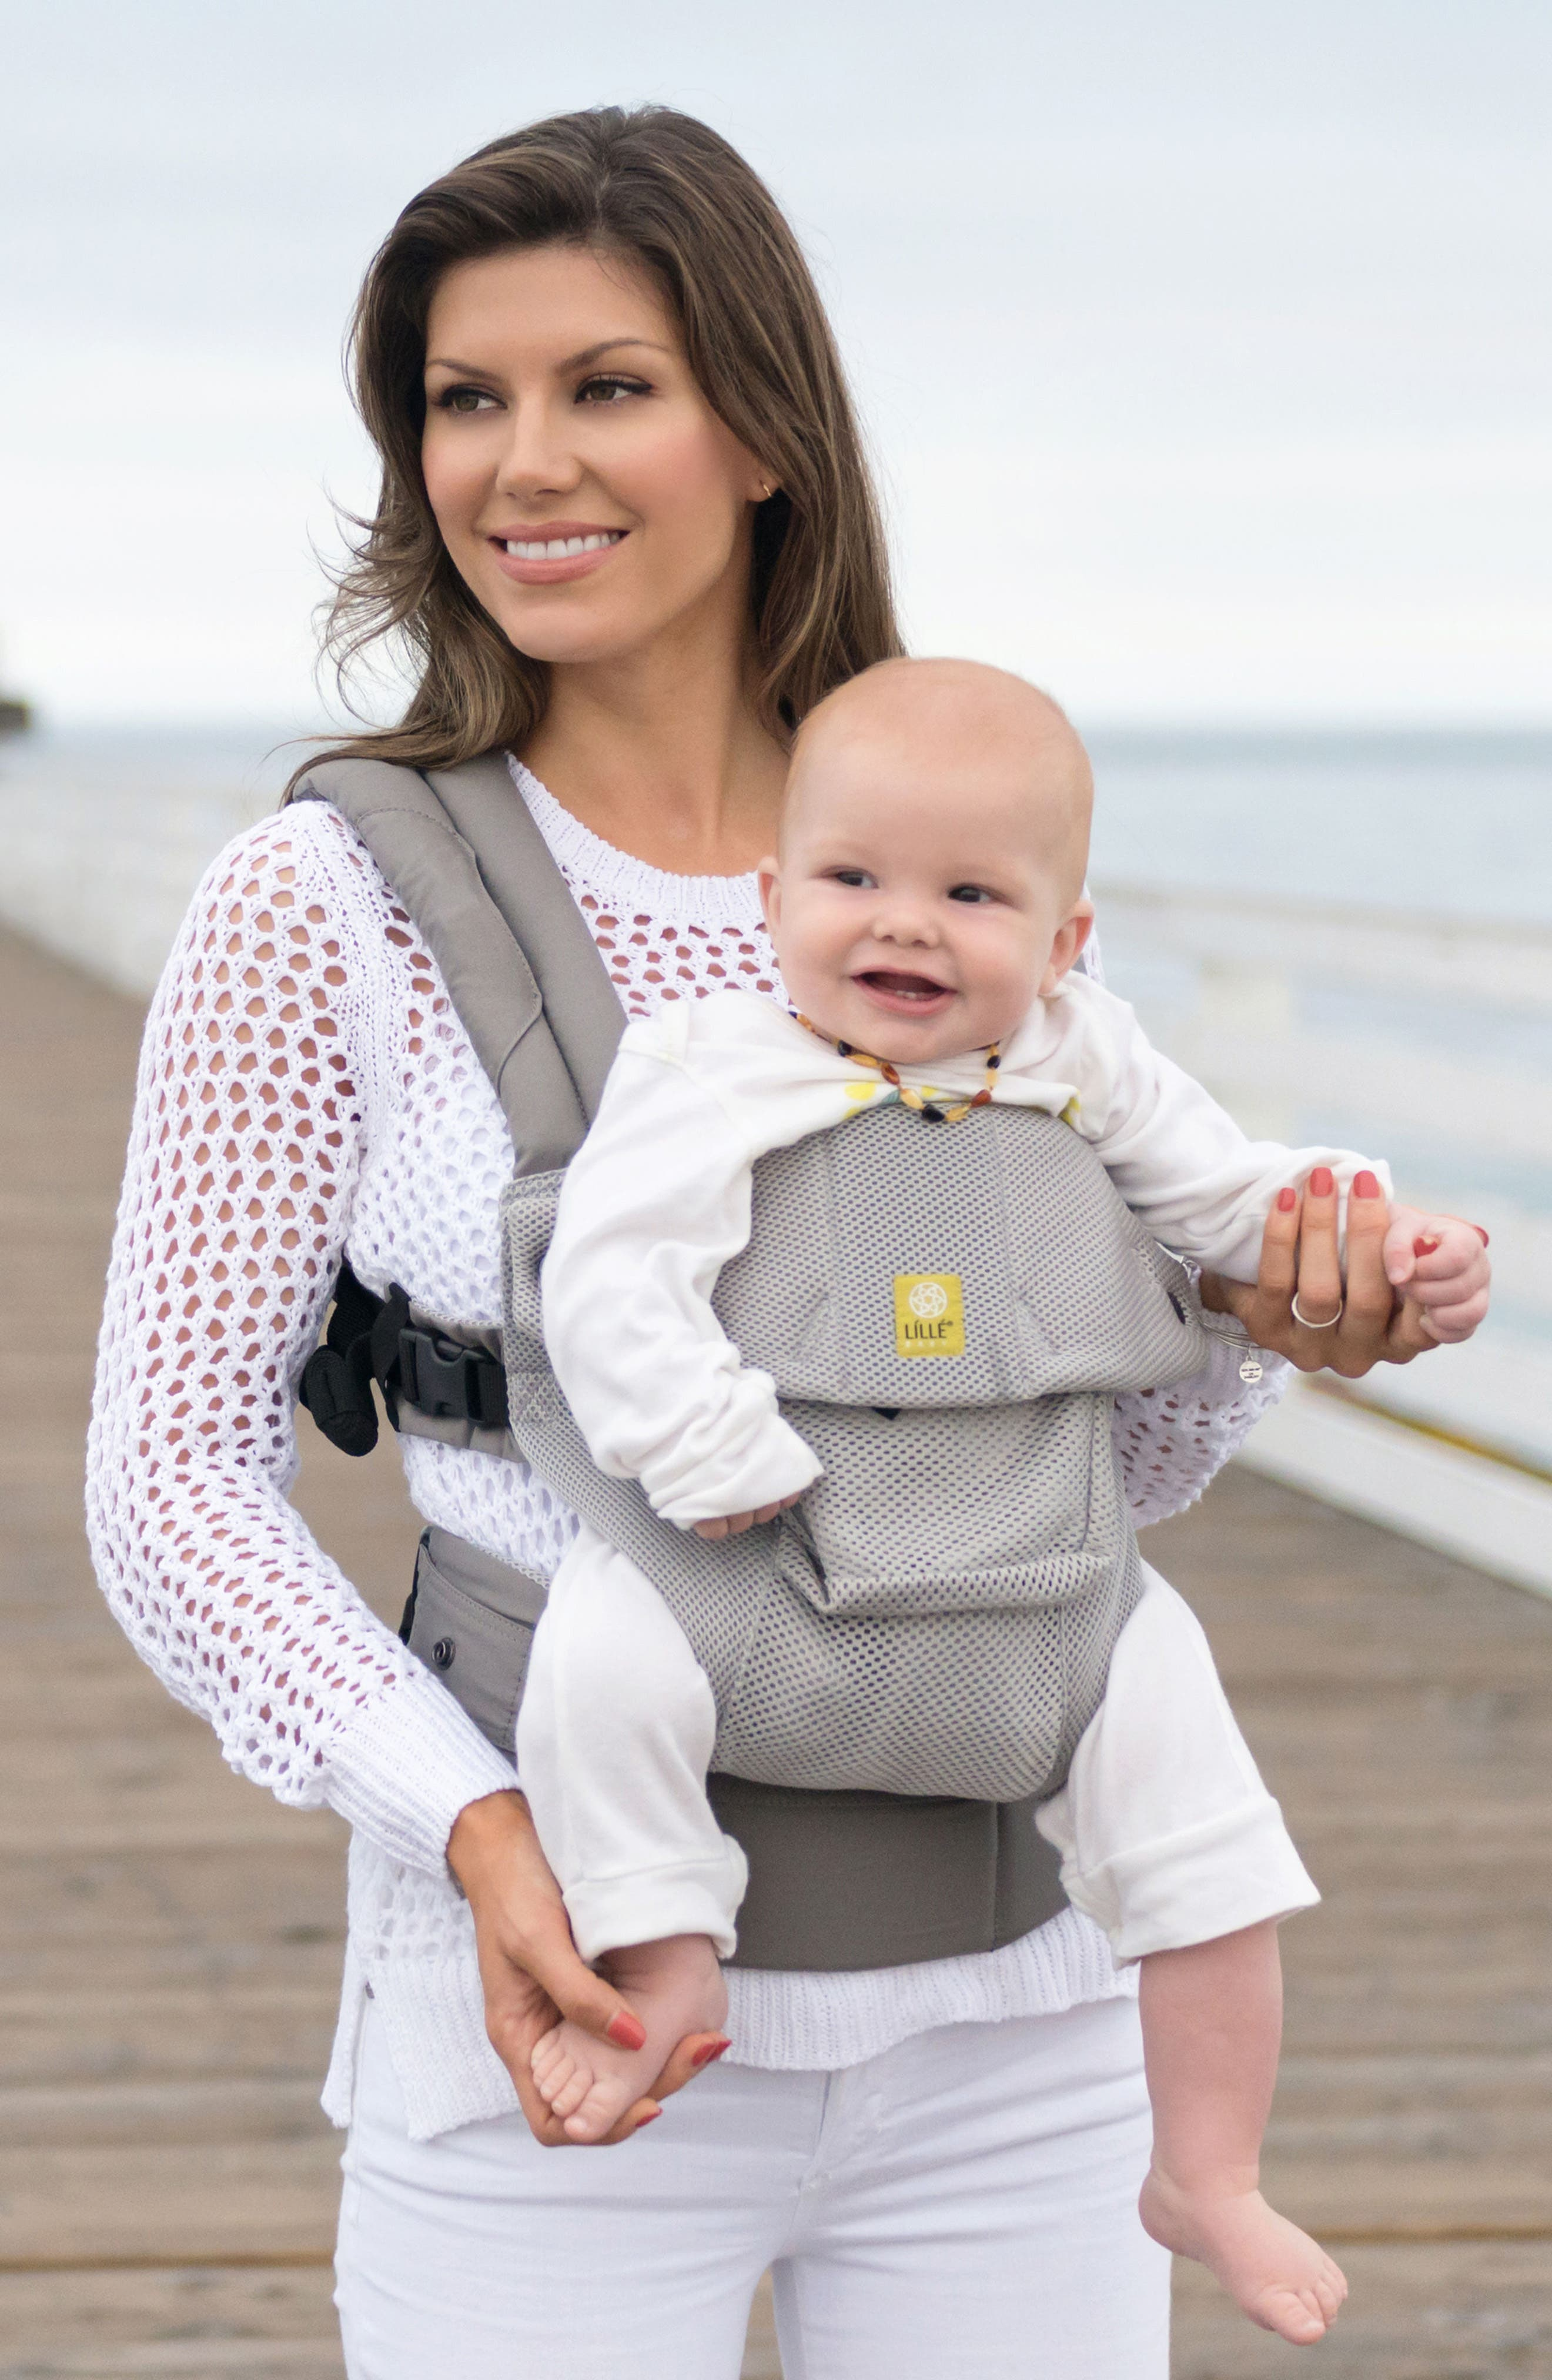 'Airflow' Baby Carrier,                             Alternate thumbnail 2, color,                             GREY MIST